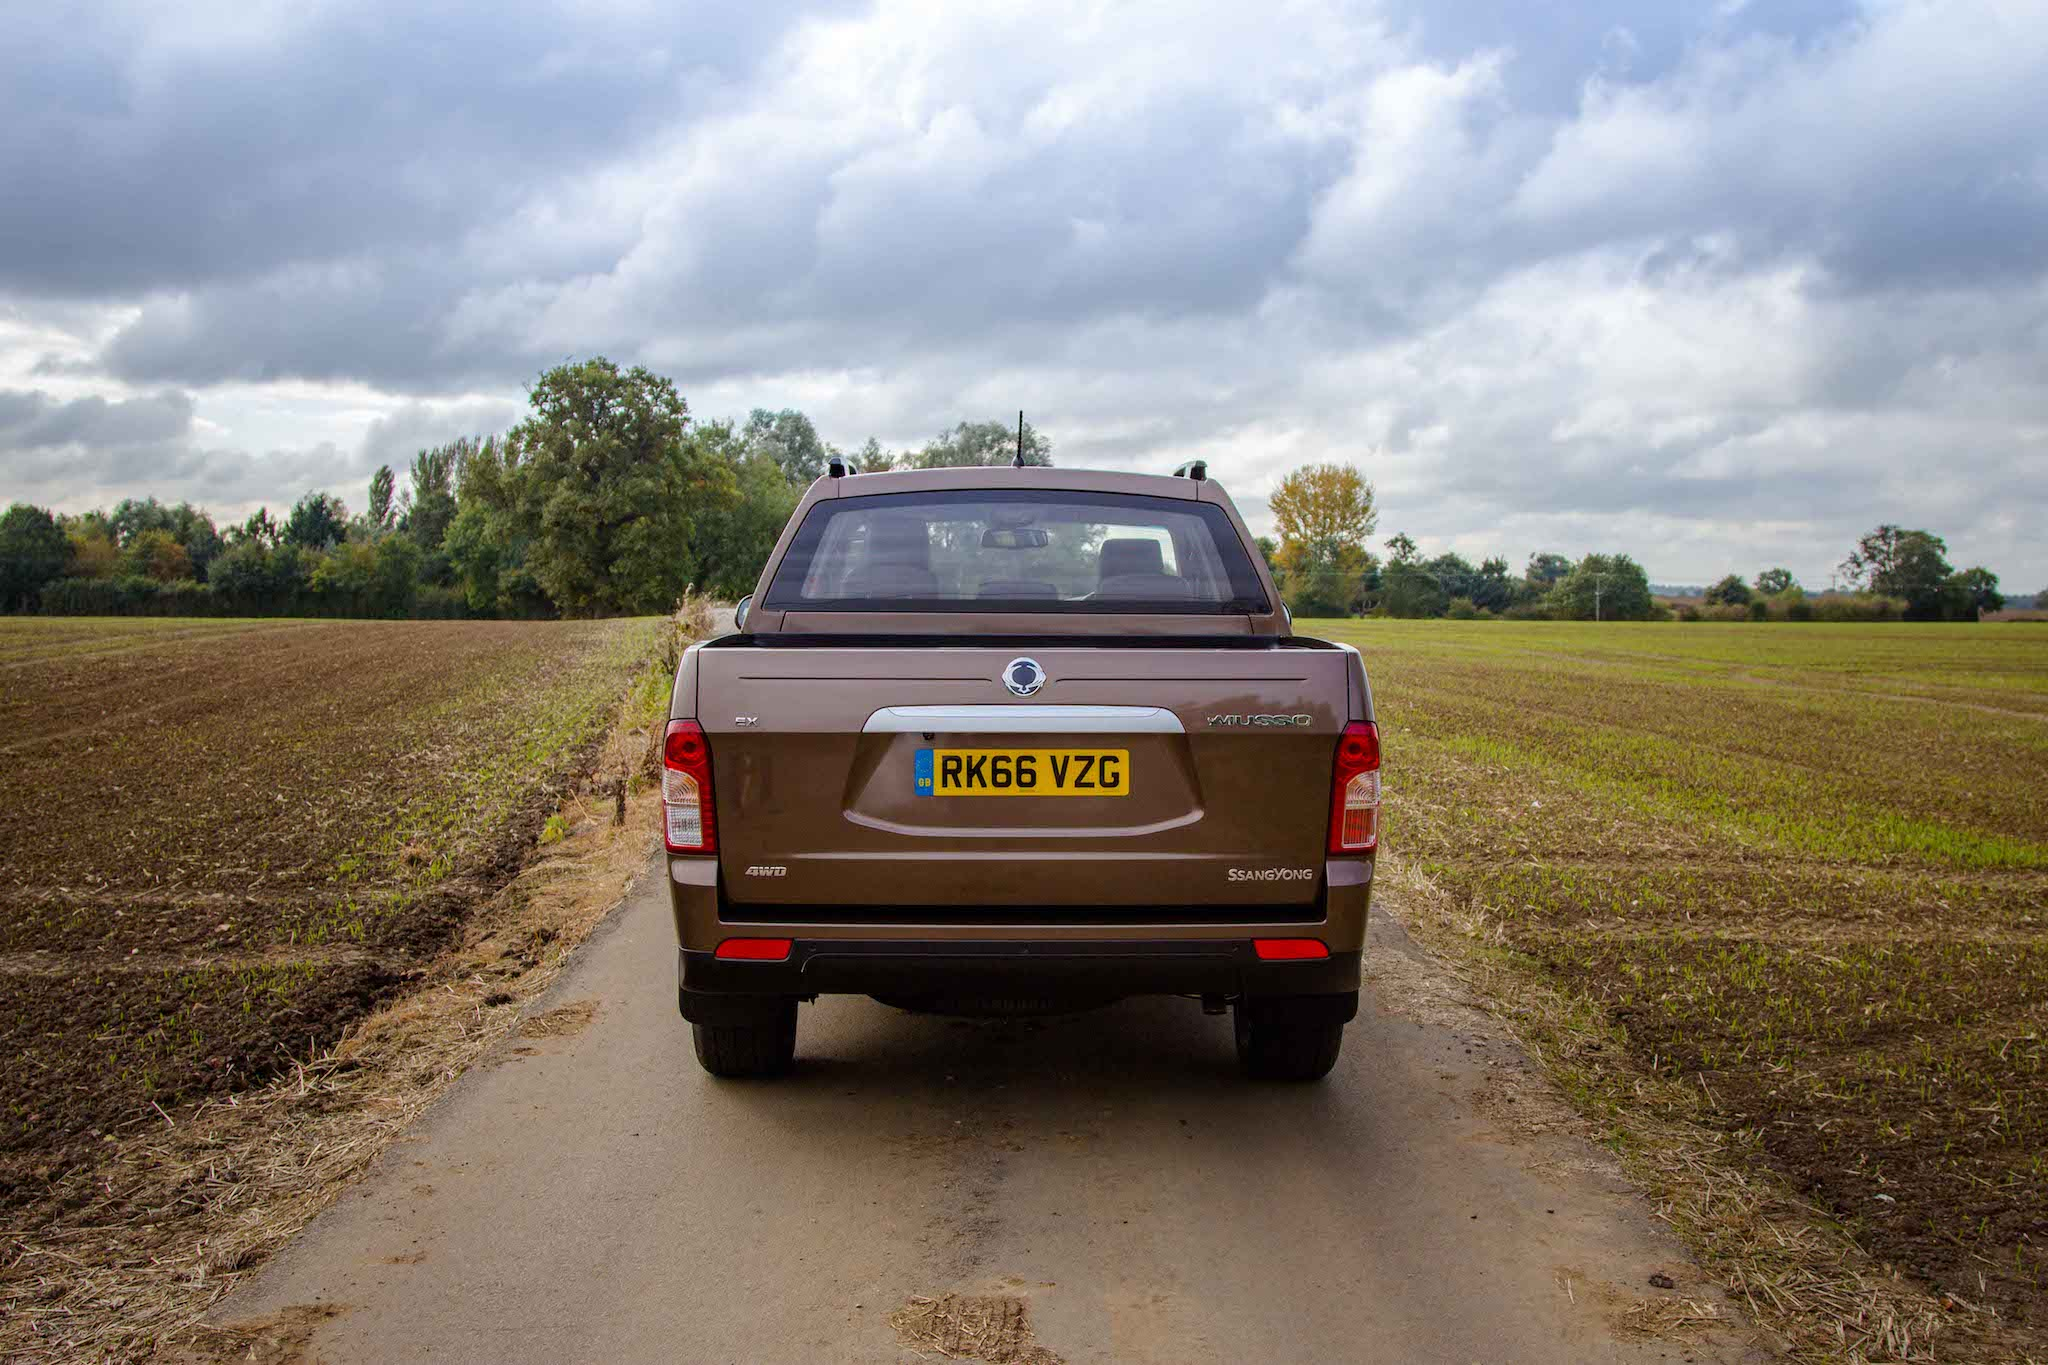 2016 Ssangyong Musso Review 22 Litre Inline 4 Turbodiesel Skoda Pick Up 1 3 Engine Diagram